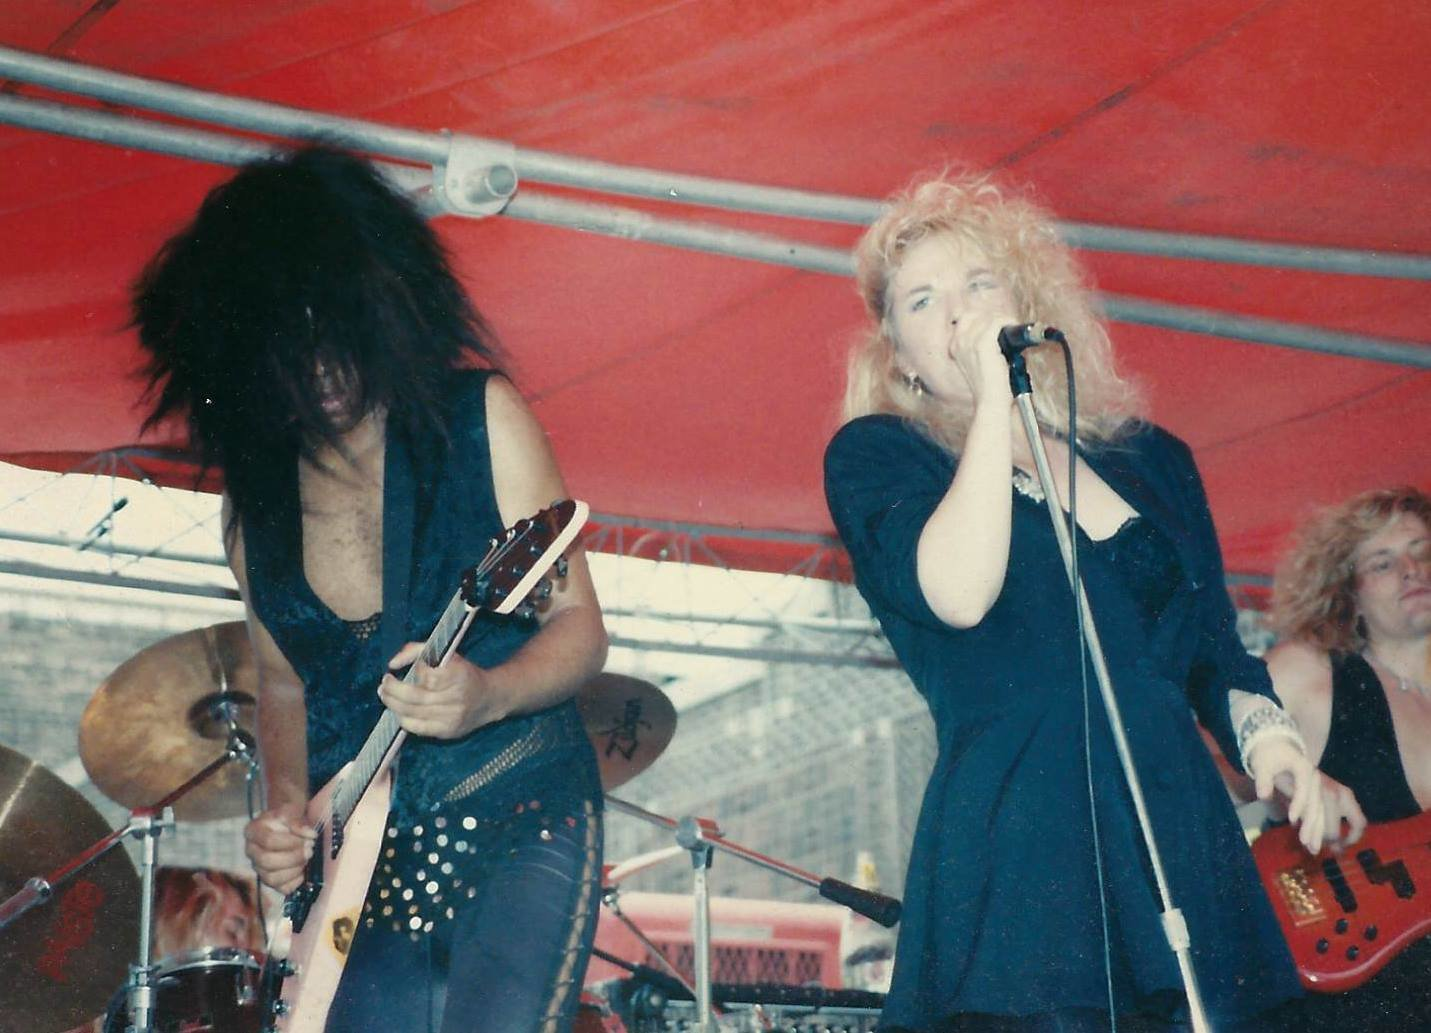 Craig Calvert and Jan James performing onstage together with the glam metal band Jewel Fetish in the mid-'80s.